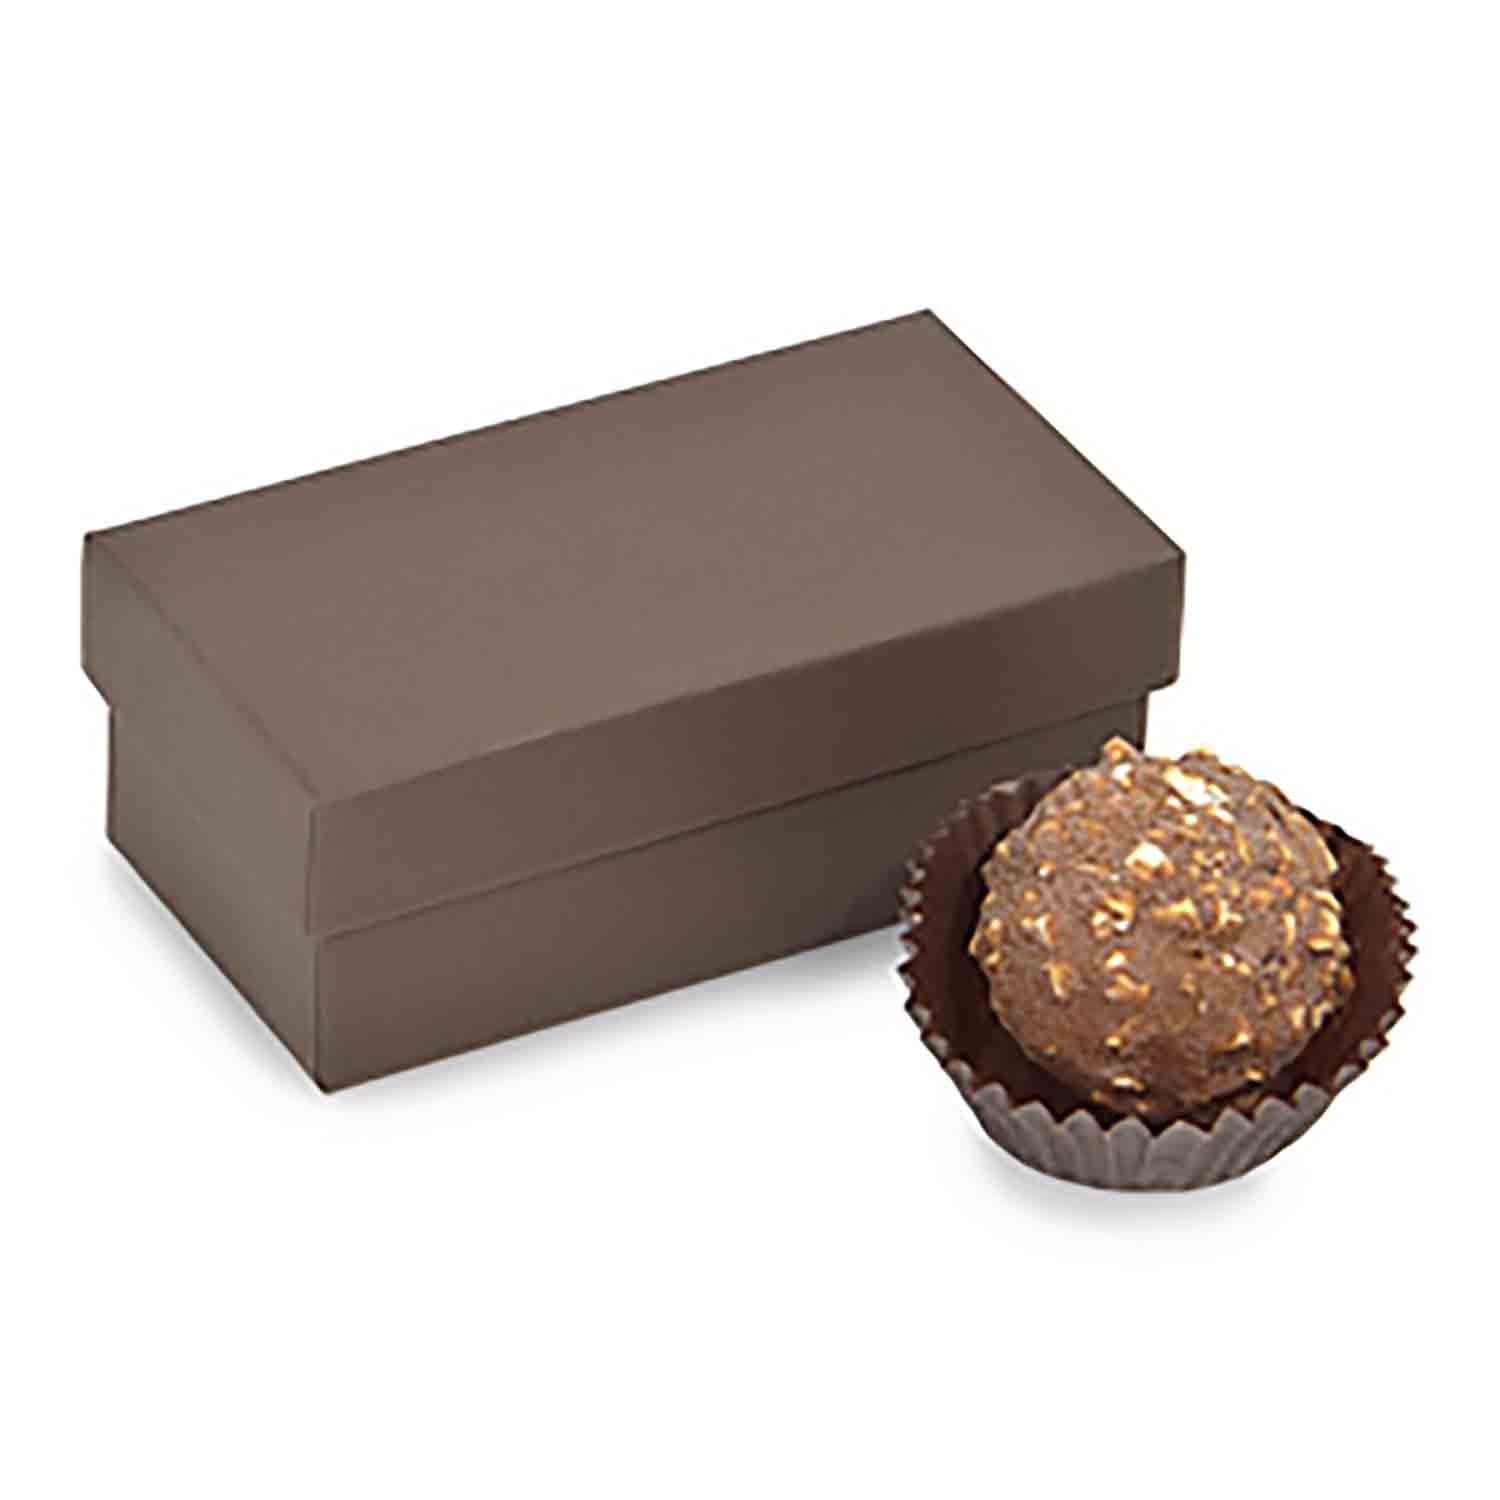 2 Pc. Chocolate Brown Candy Box